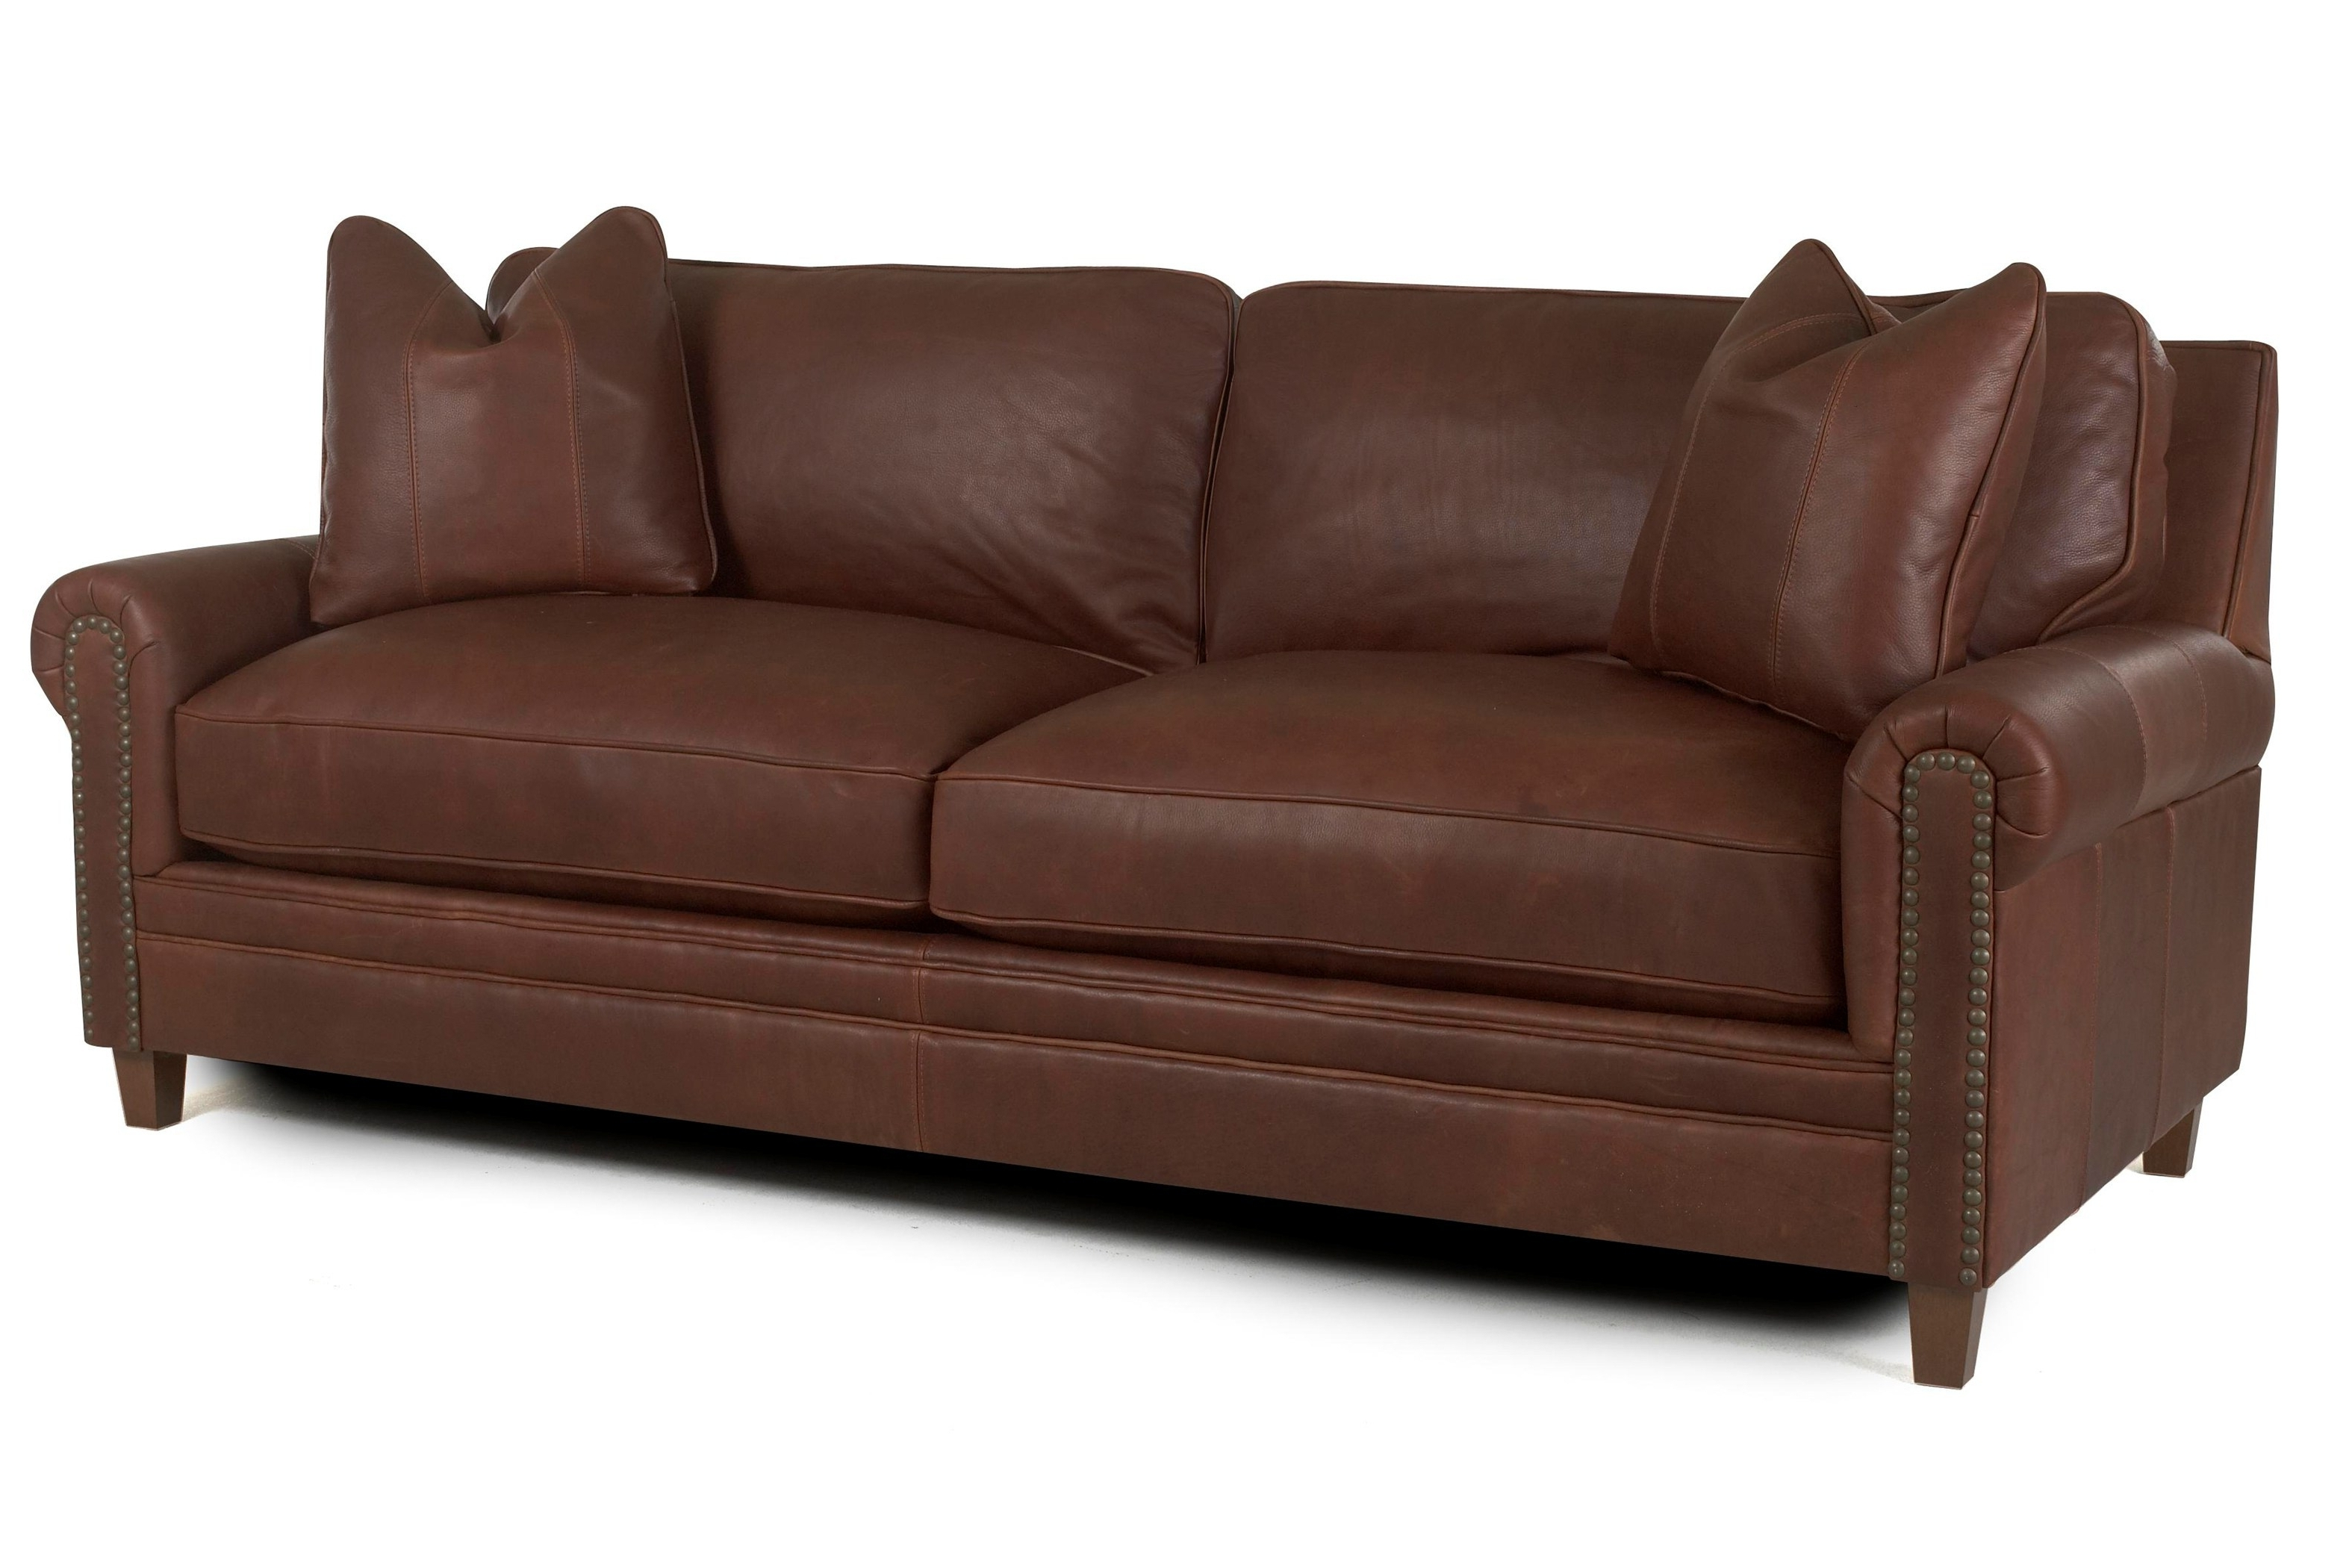 Sears Sofas Intended For Well Known Furniture: Ty Pennington Style Mayfield Seat Sofa Sears Outlet (View 17 of 20)